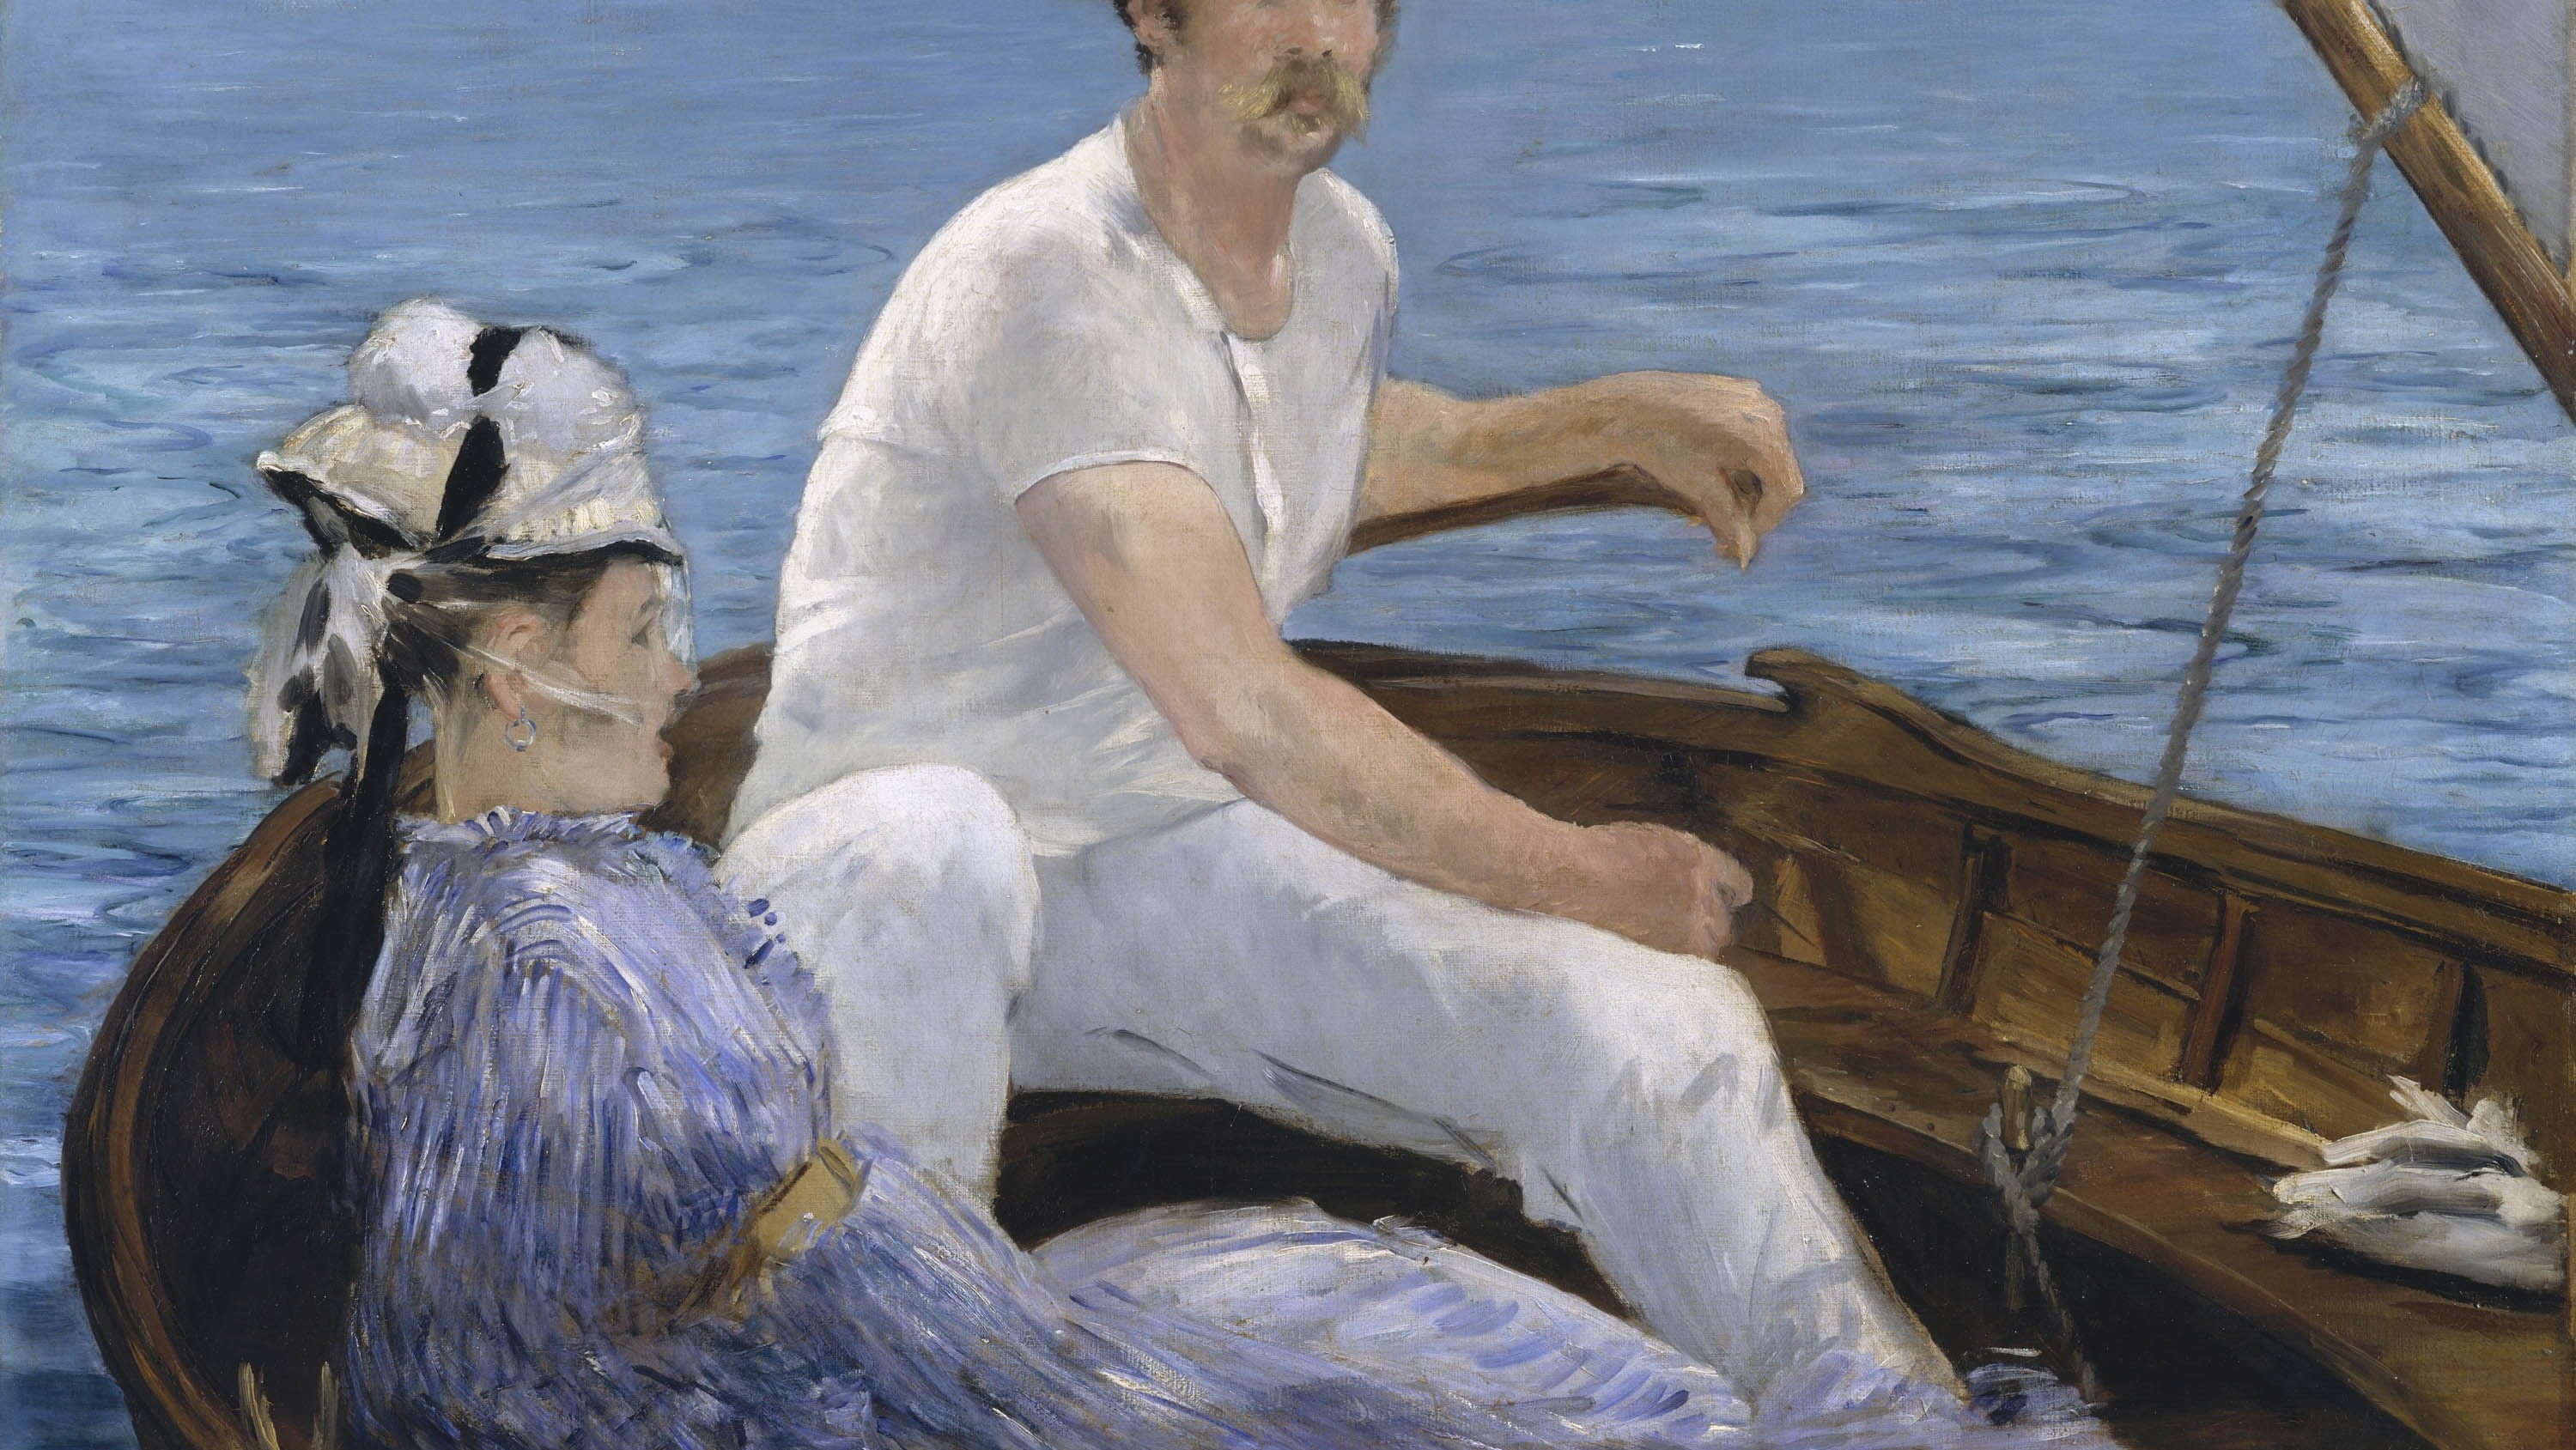 A painting of a couple boating, the man wears all white and a hat, the woman a fashionable blue dress and bonnet.